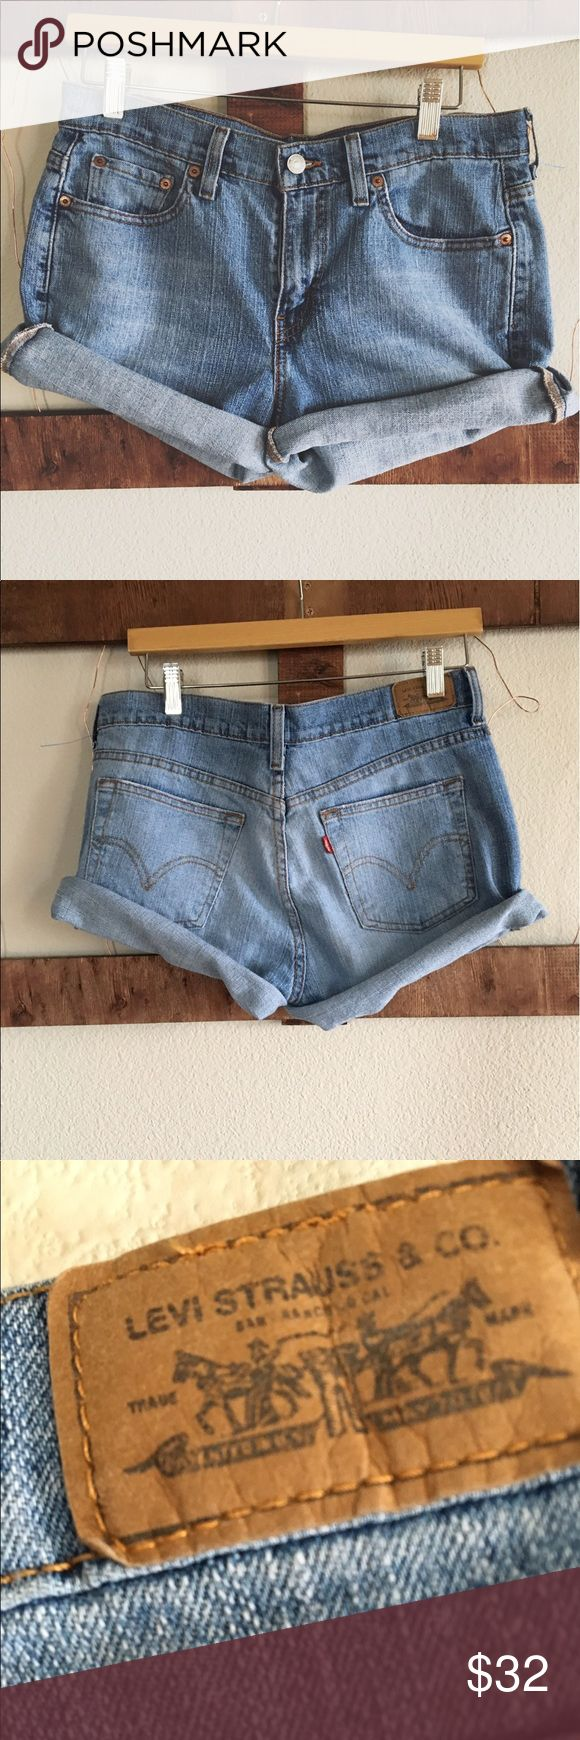 """Vintage Levi 505 jean shorts Vintage Levi jean short 505🌱 32"""" waist, 10"""" length cuffed, not darted so you can adjust the cuff, would fit a size 8 best✂️ make an offer and its yours🌻 Levi's Shorts Jean Shorts"""